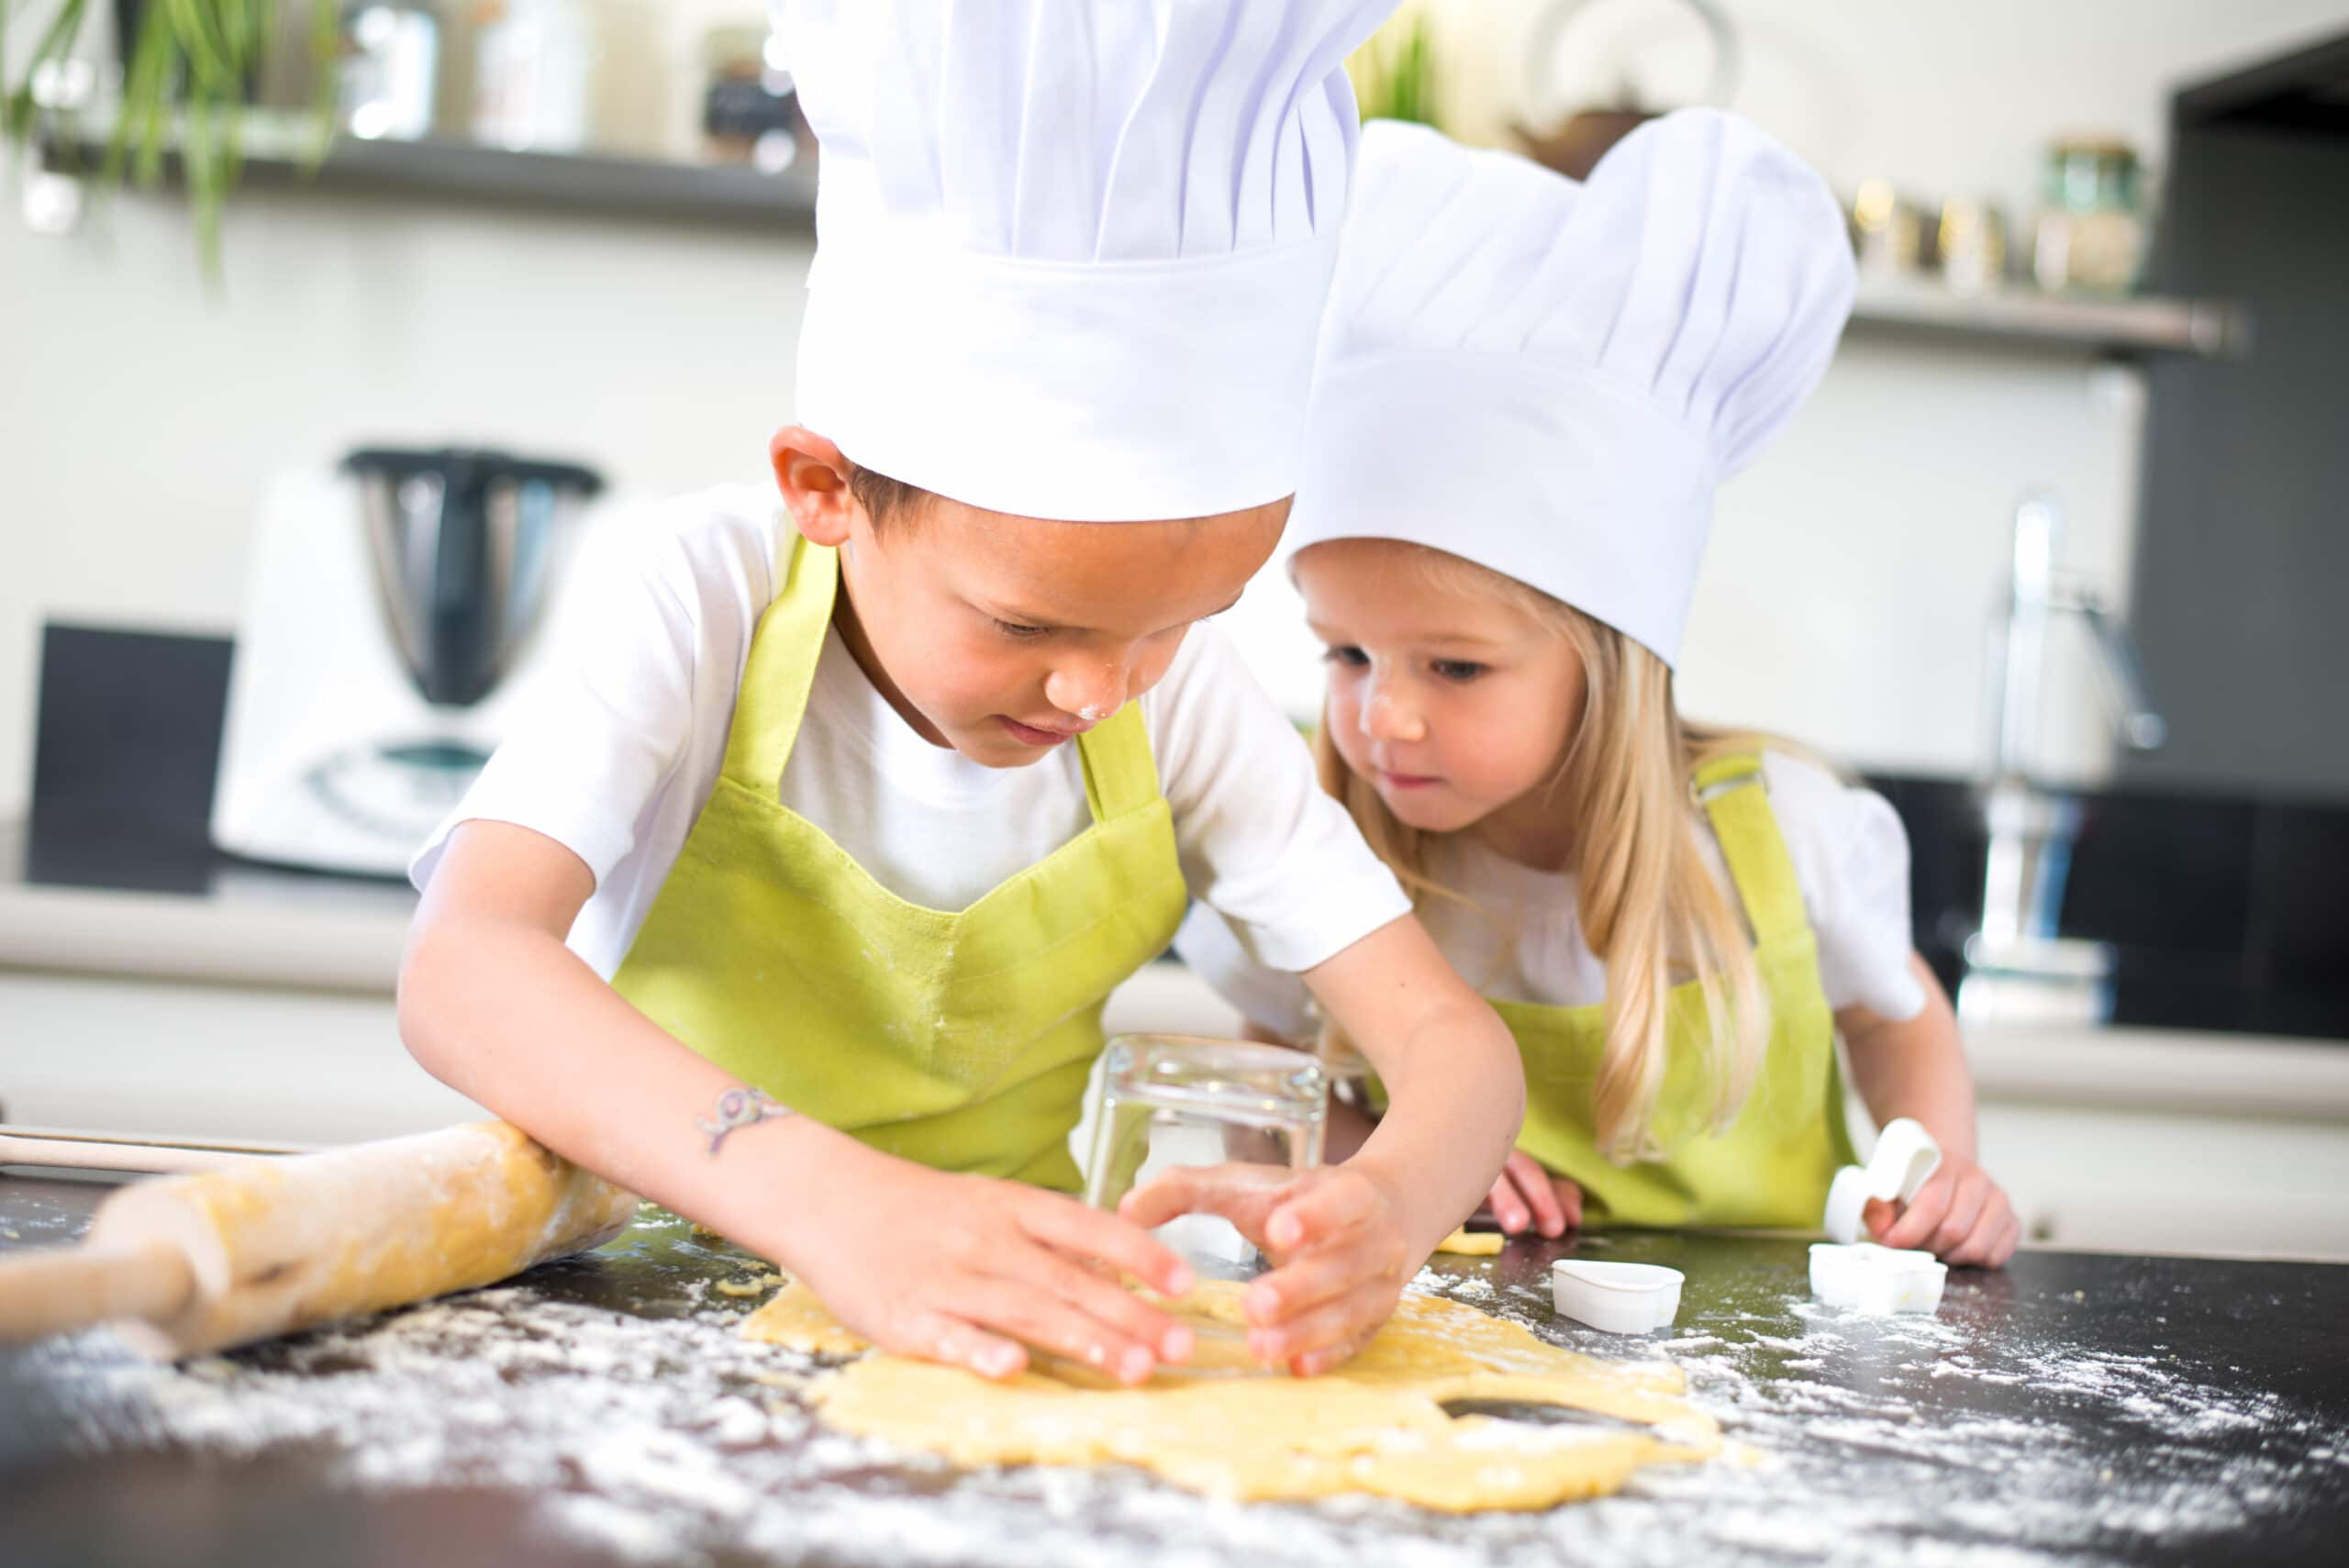 kids baking for a rainy day activity